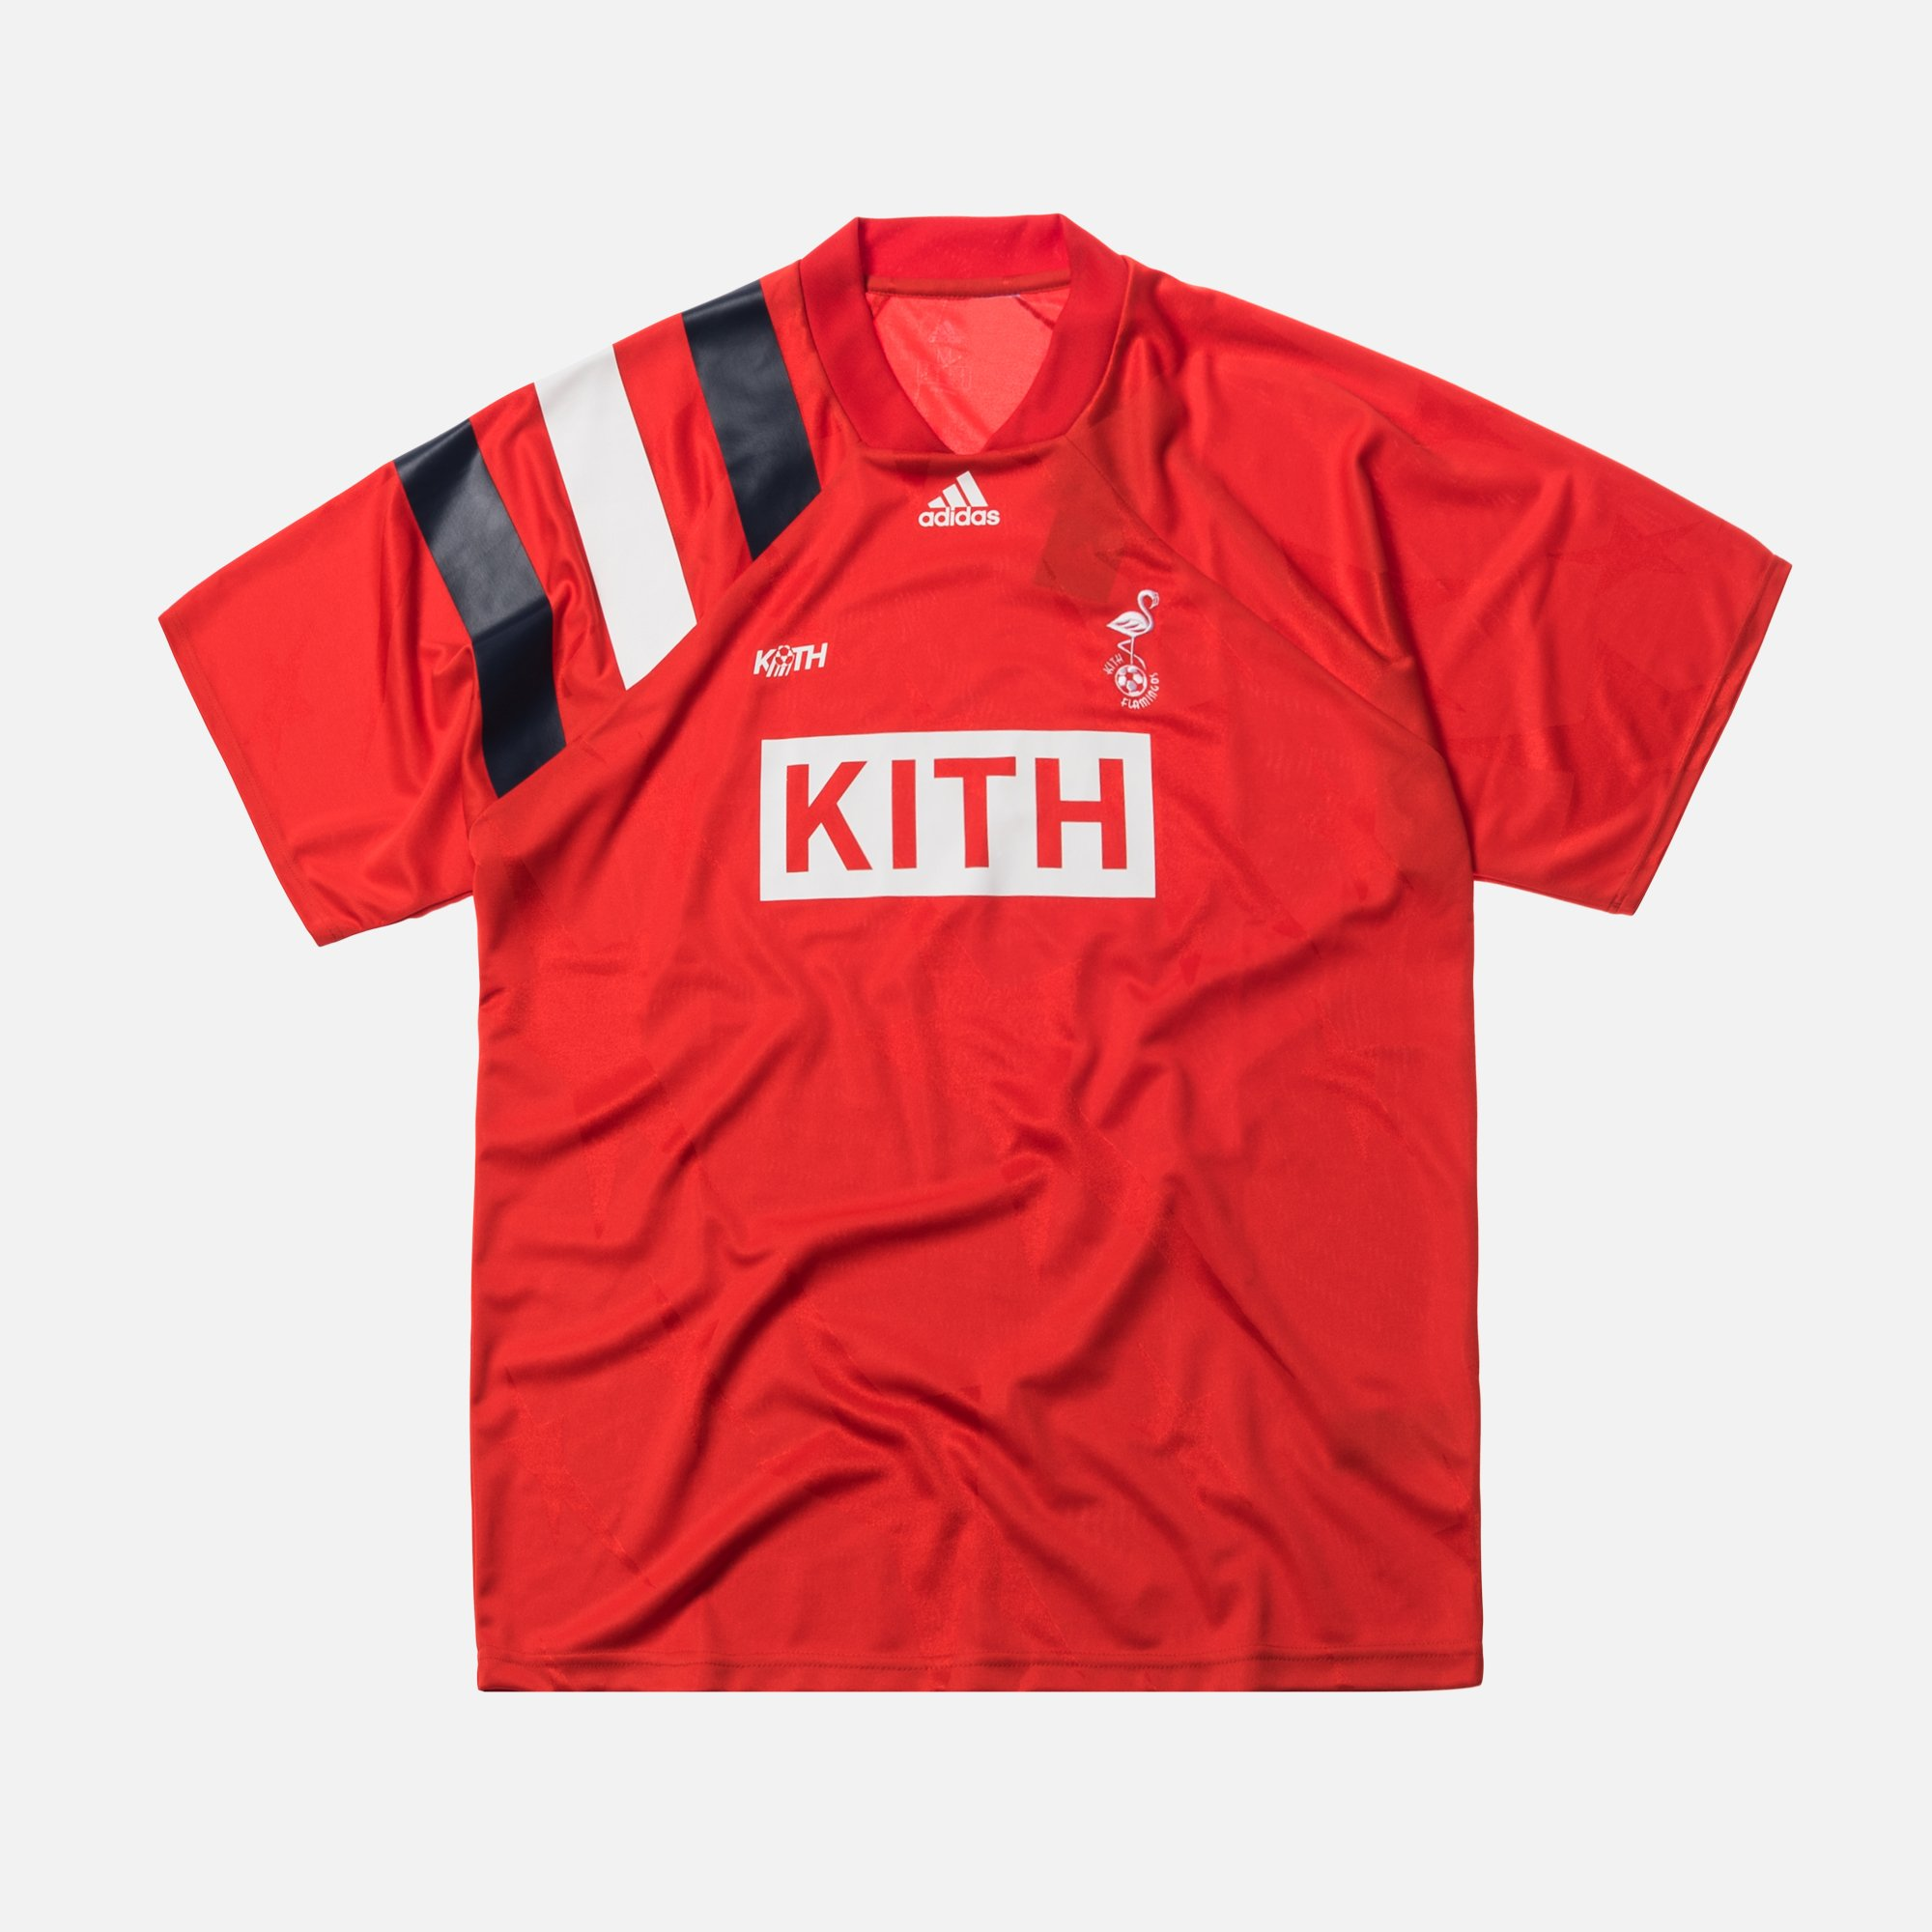 save off 71253 830b4 KITH X ADIDAS SOCCER MATCH JERSEY FLAMINGOS AWAY SIZE MEDIUM - NEW